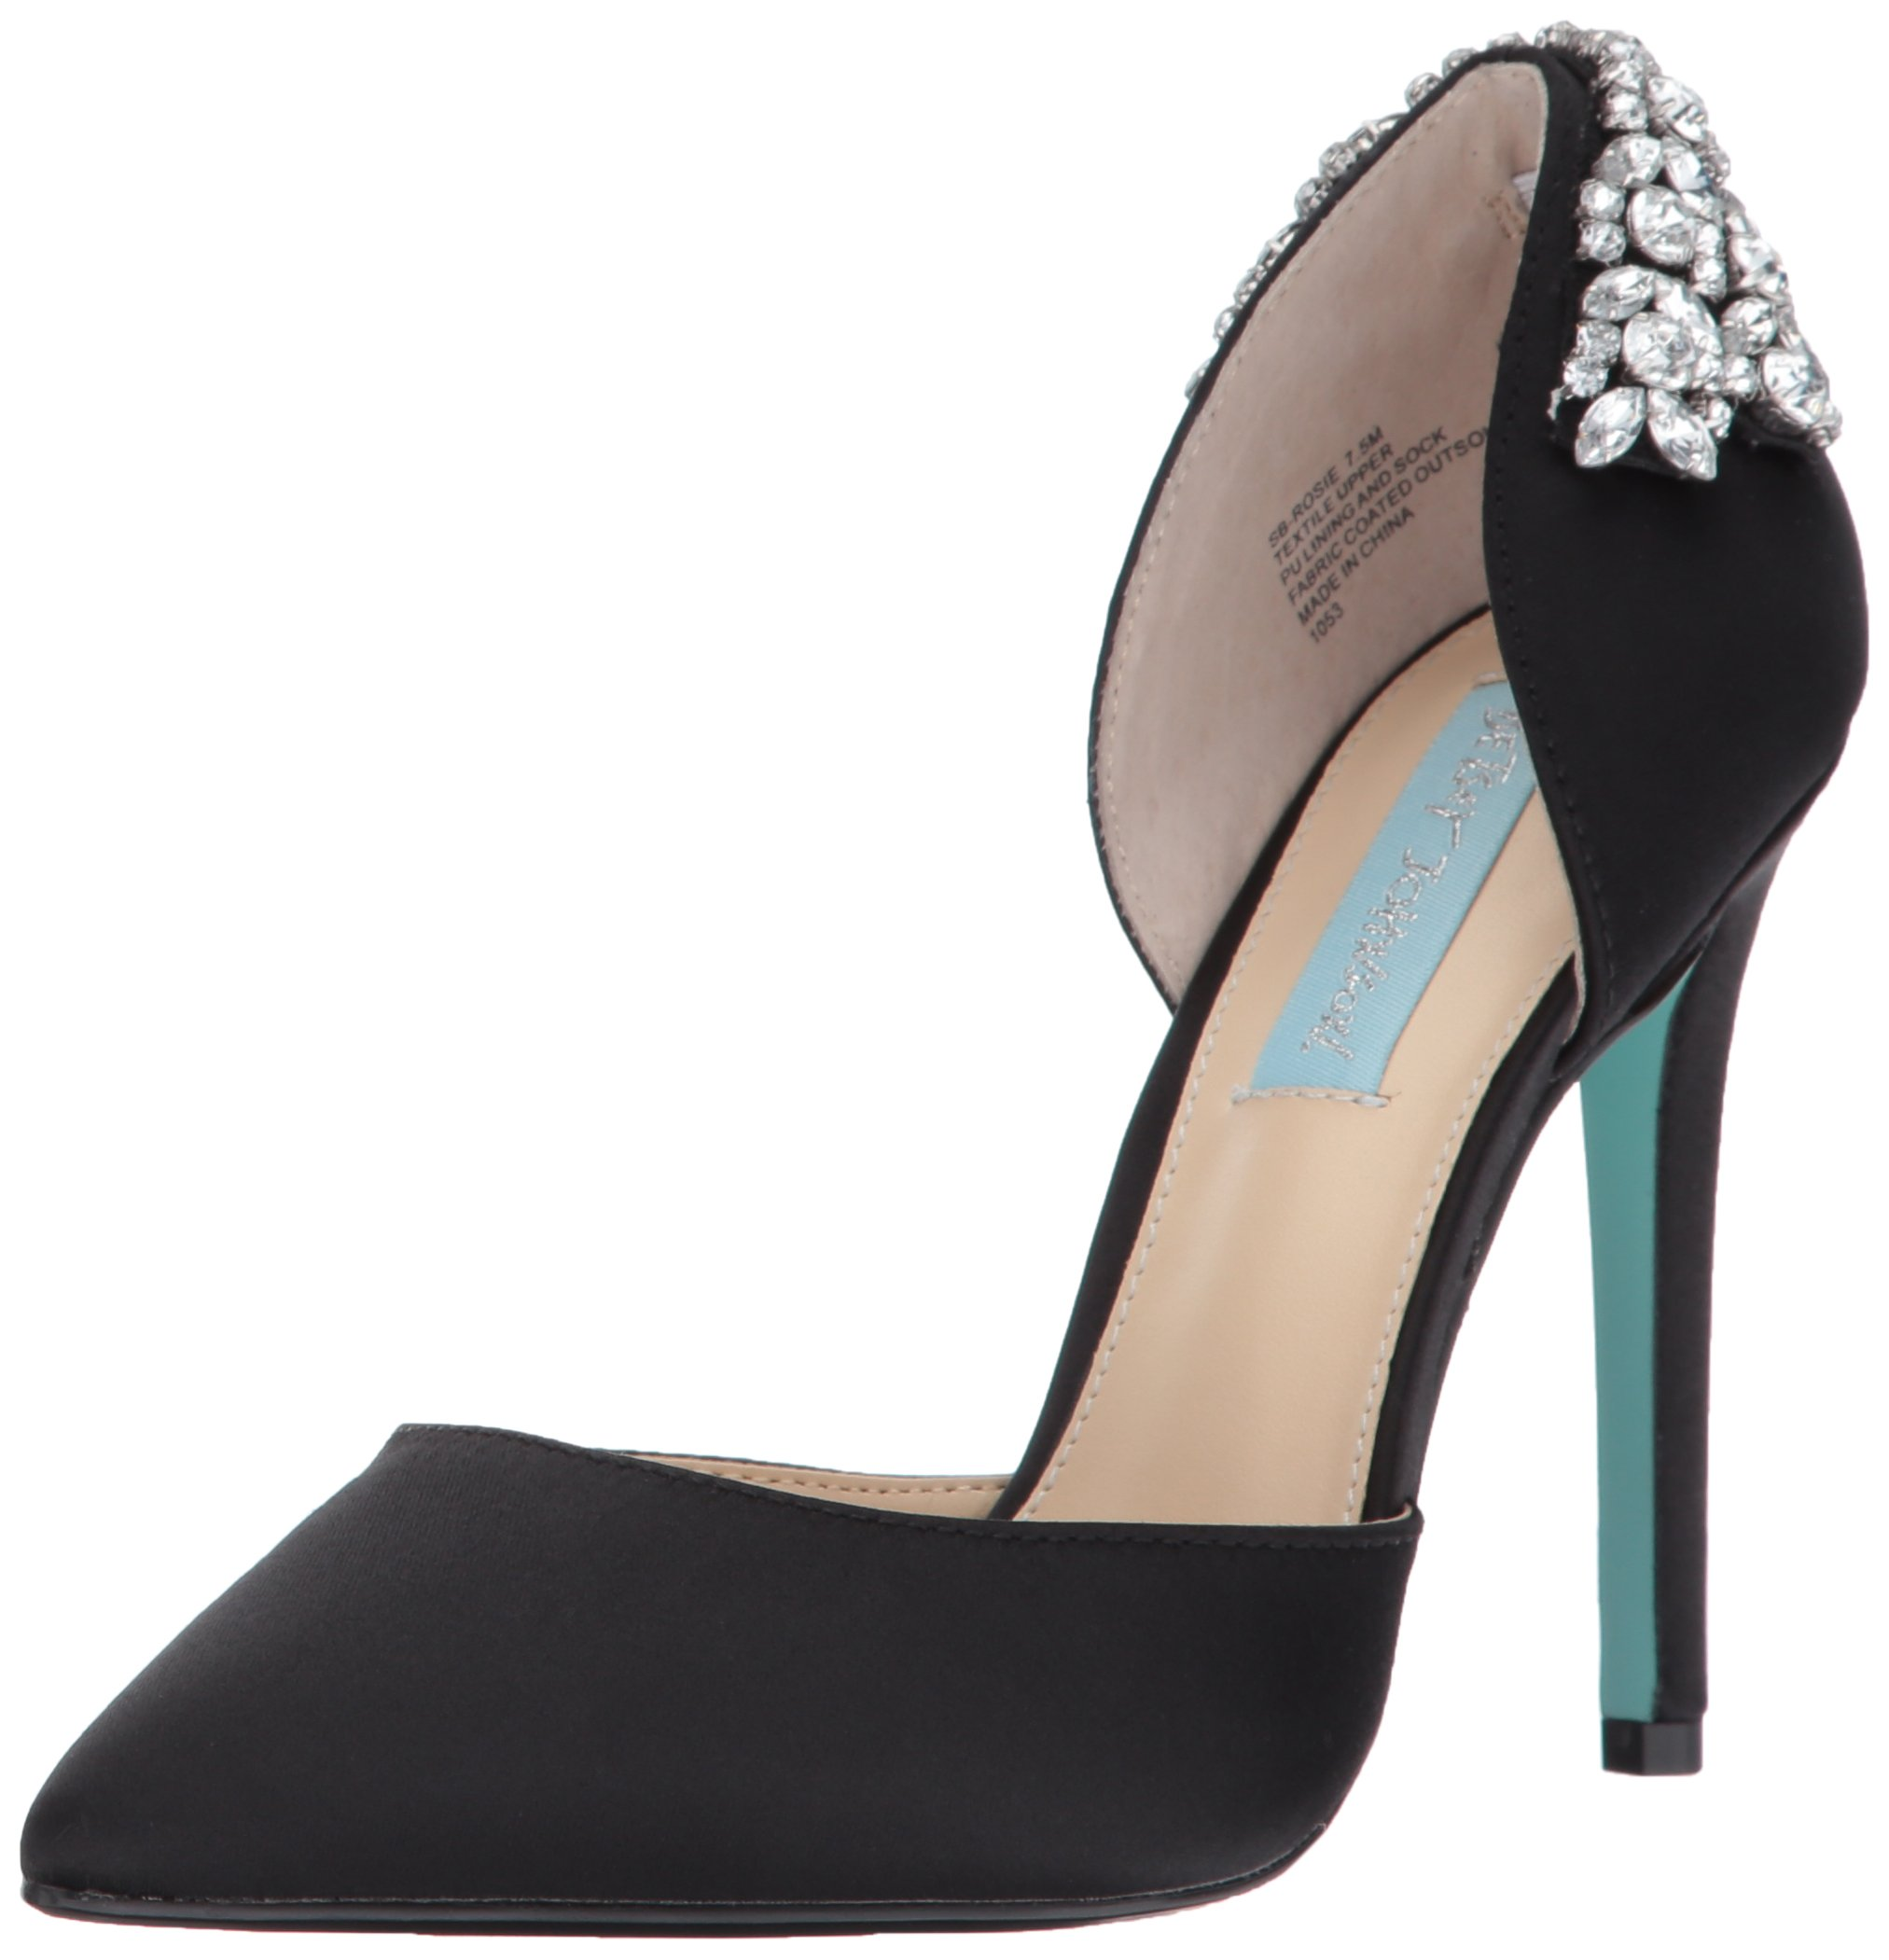 Blue by Betsey Johnson Women's SB-Rosie D'Orsay Pump, Black Satin, 9.5 M US